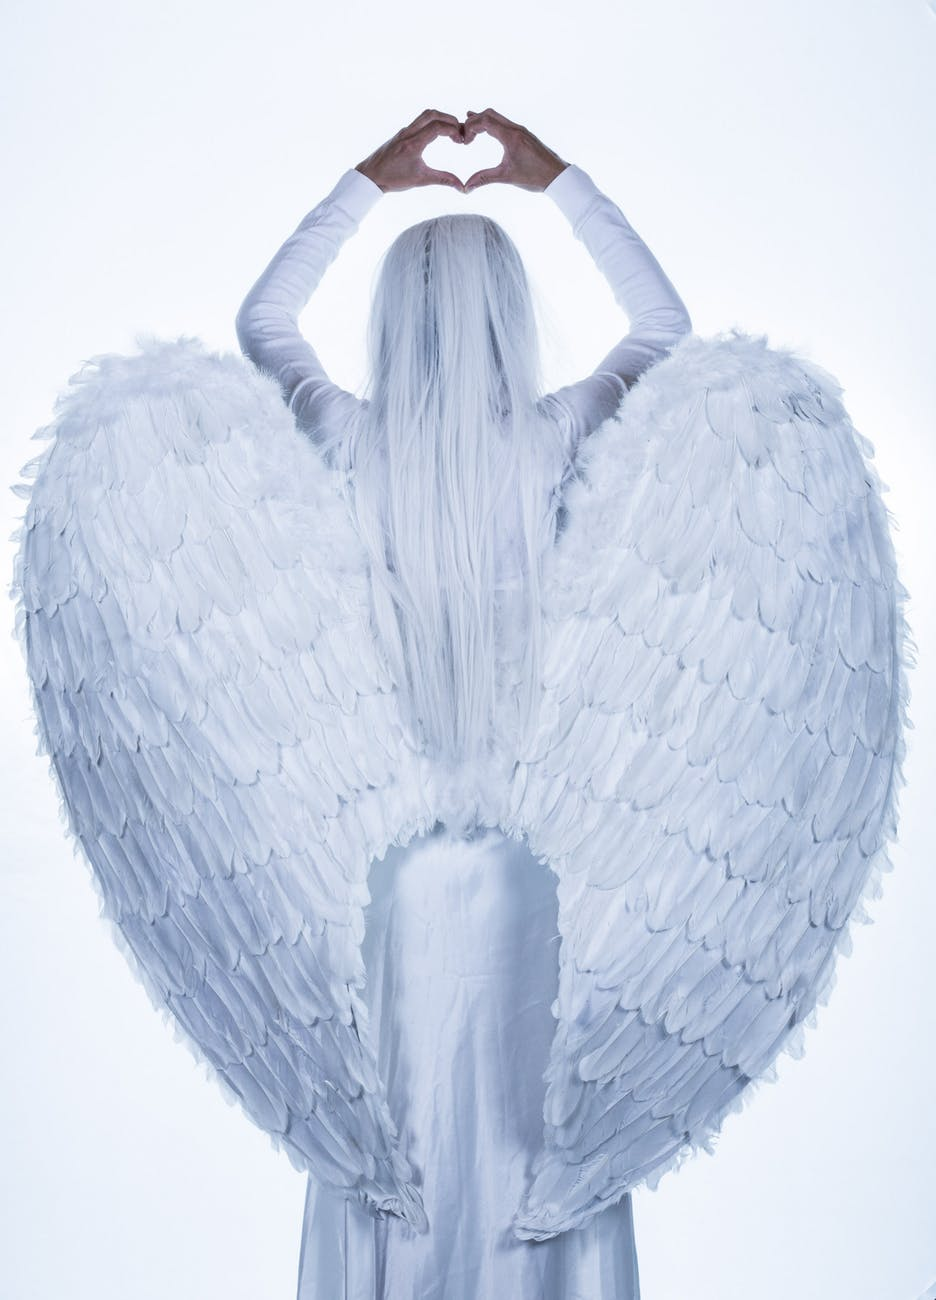 angel-wings-girl-woman-104841.jpeg